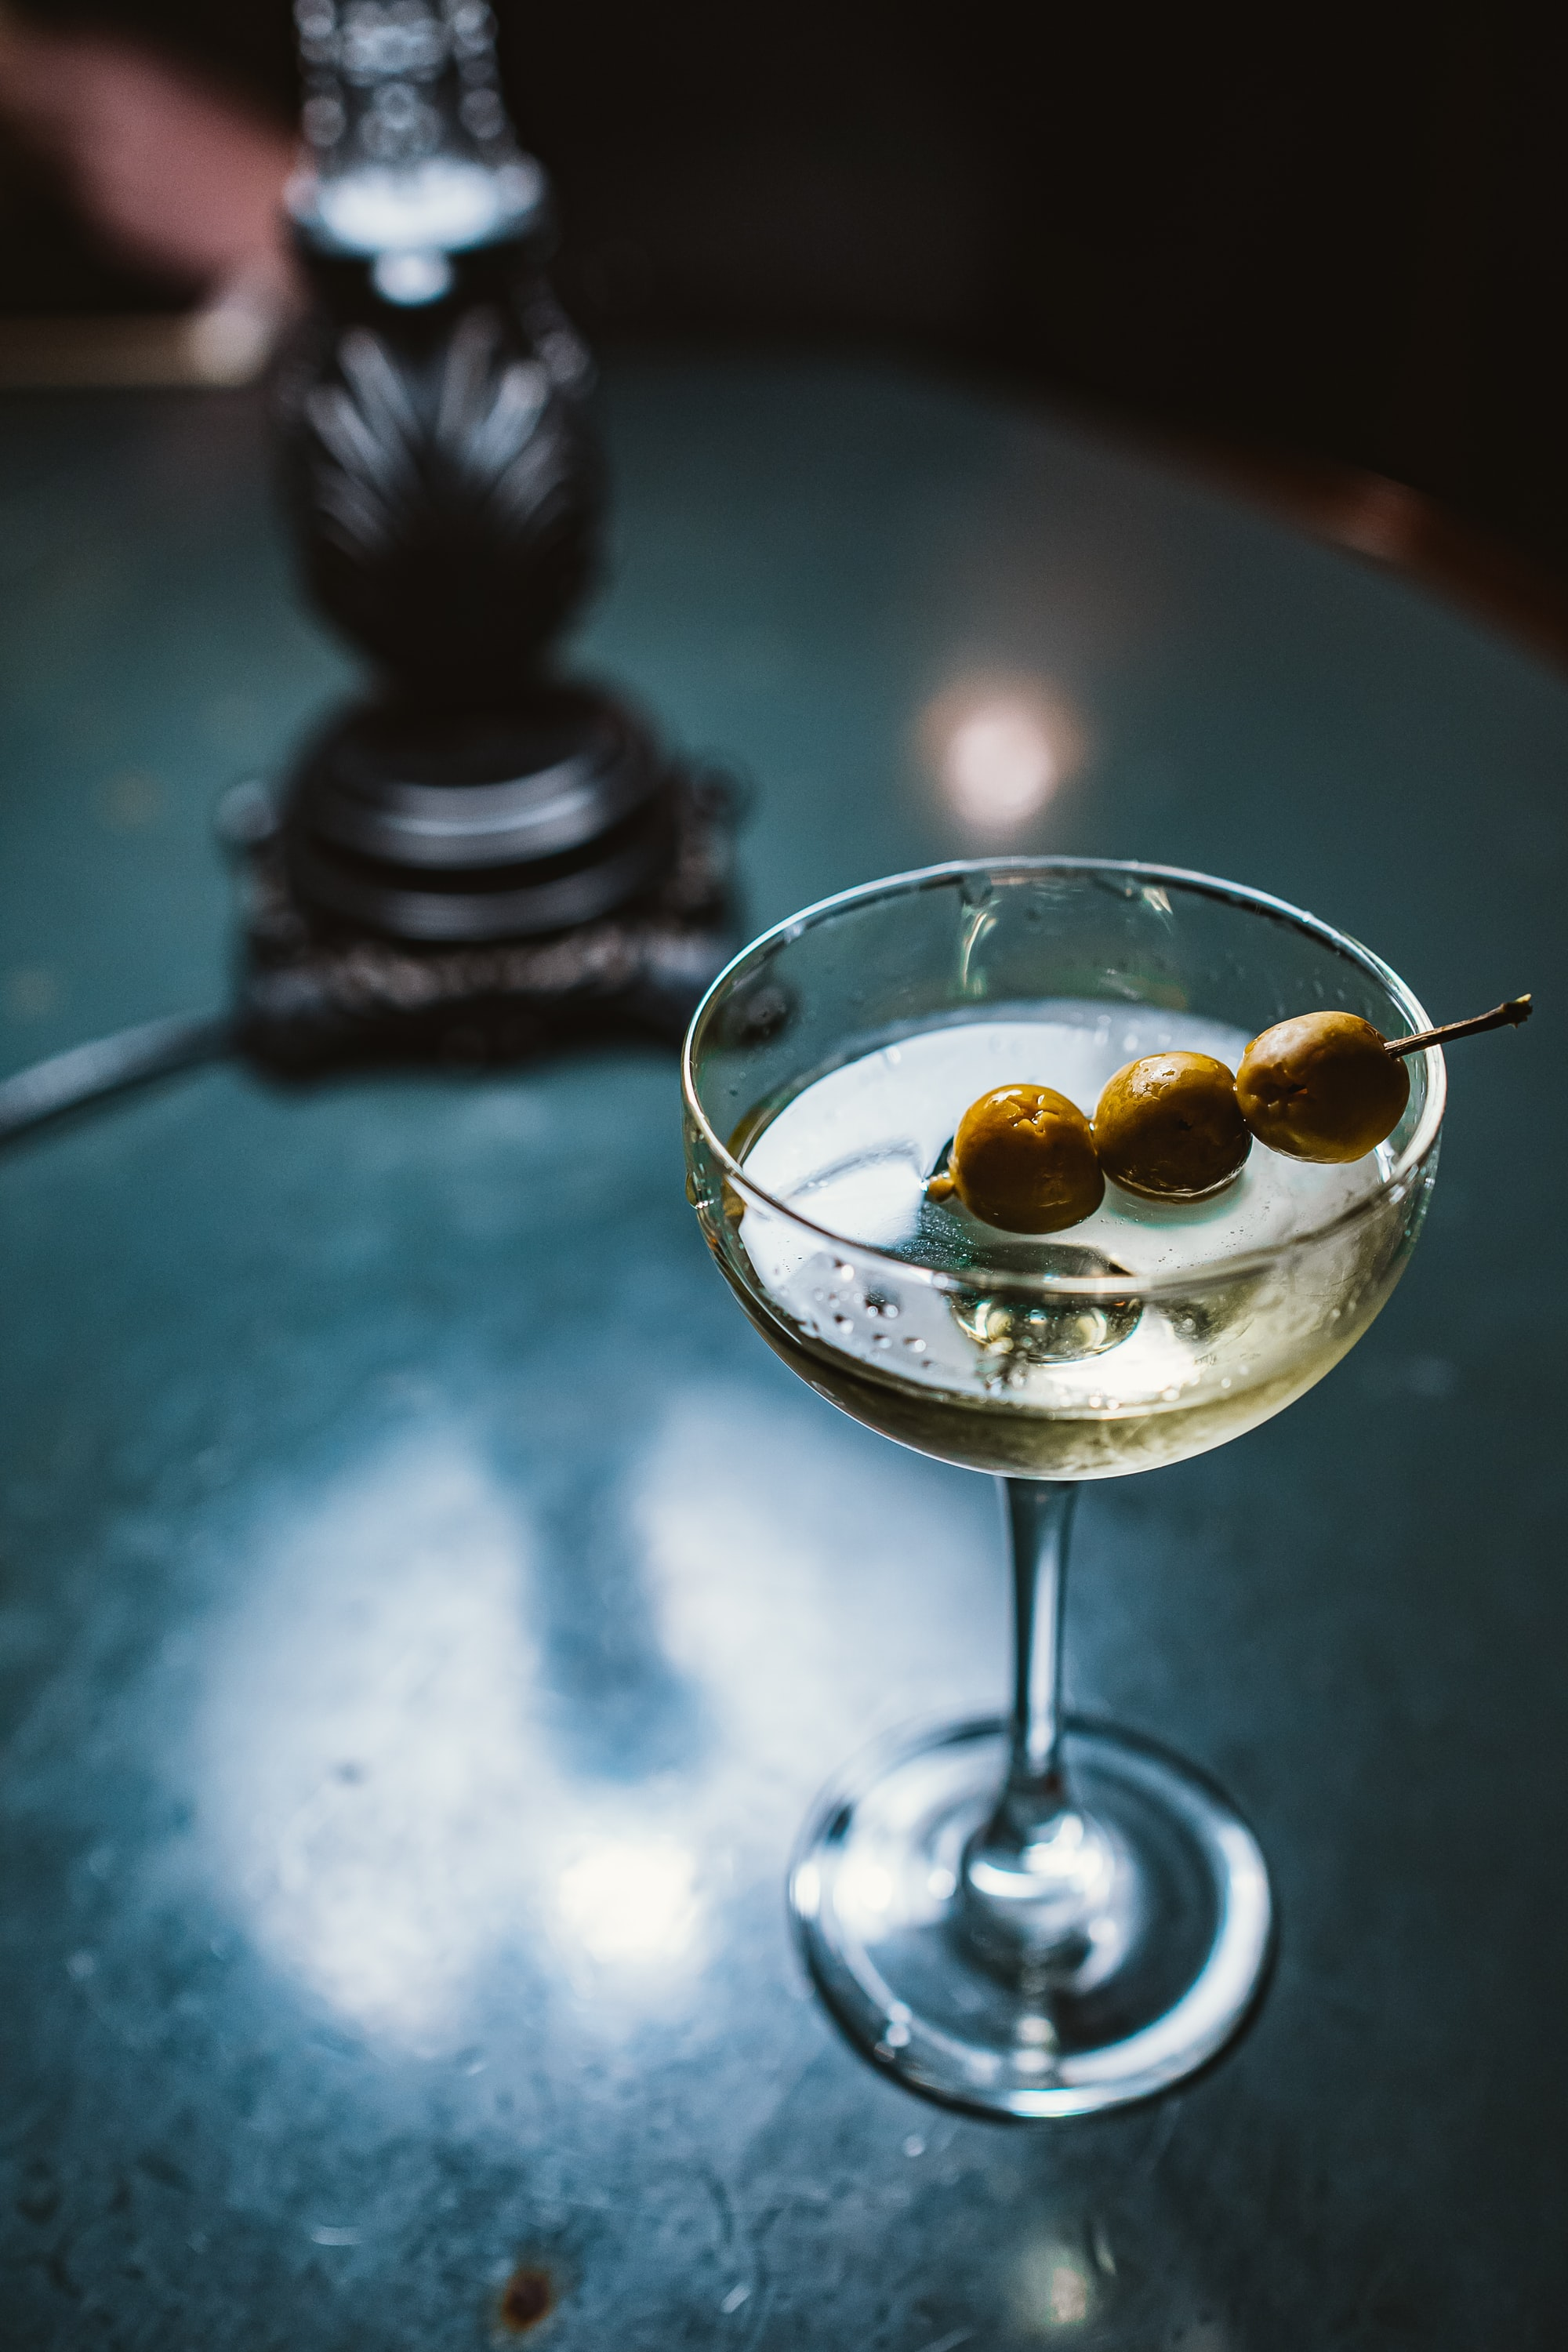 martini cocktail with 3 olives